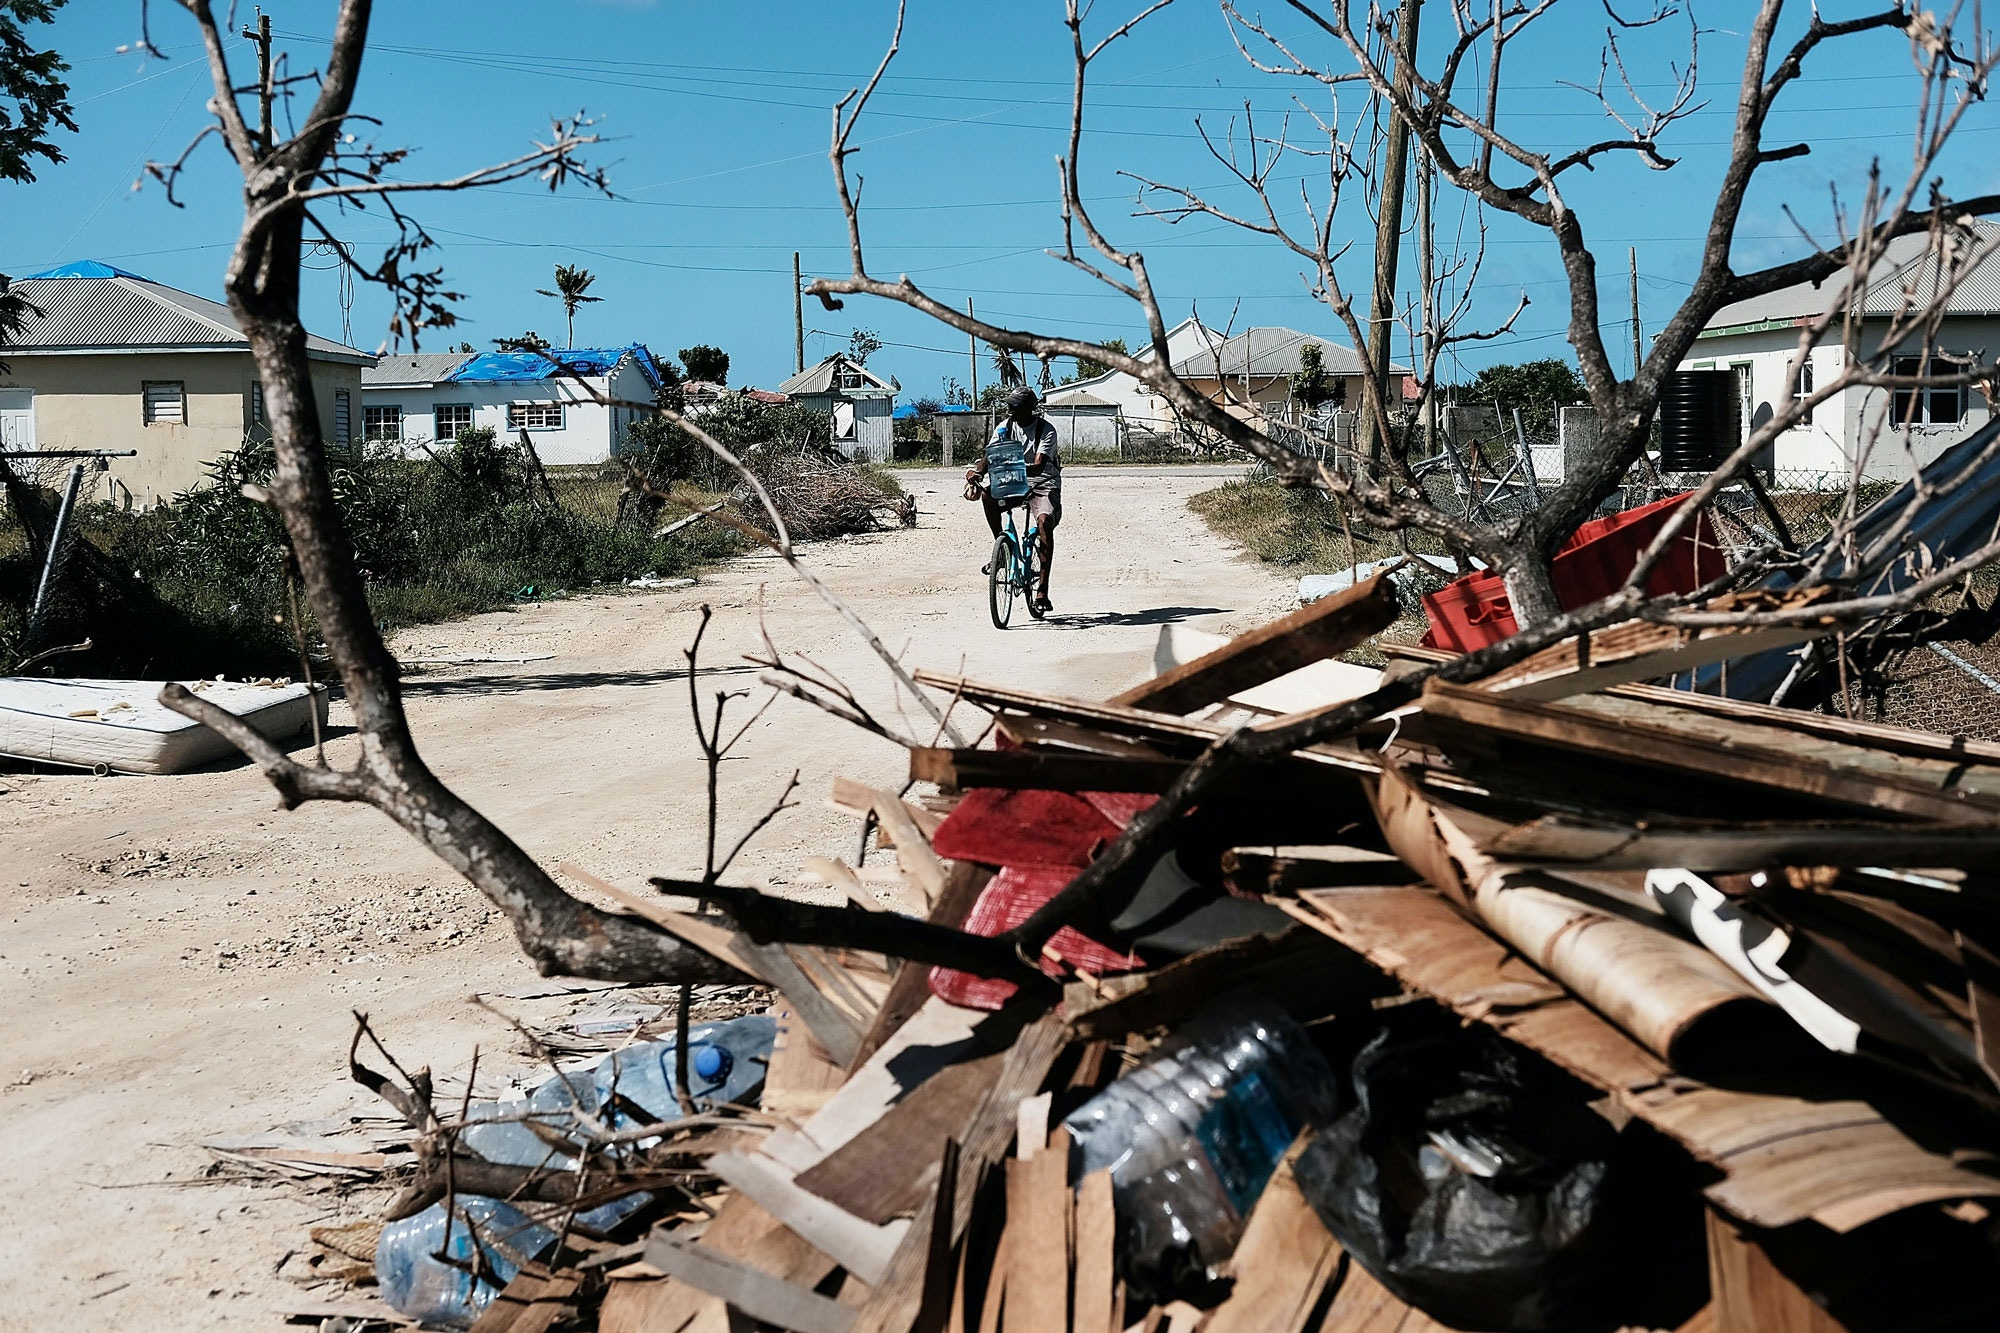 CODRINGTON, BARBUDA - DECEMBER 08: Debris from damaged homes lines a street on the nearly destroyed island of Barbuda on December 8, 2017 in Cordington, Barbuda. Barbuda, which covers only 62 square miles, was nearly leveled when Hurricane Irma made landfall with 185mph winds on the night of  September six. Only two days later, fearing Barbuda would be hit again by Hurricane Jose, the prime minister ordered an evacuation of all 1,800 residents of the island. Most are now still in shelters scattered  around Barbuda's much larger sister island Antigua.  (Photo by Spencer Platt/Getty Images)